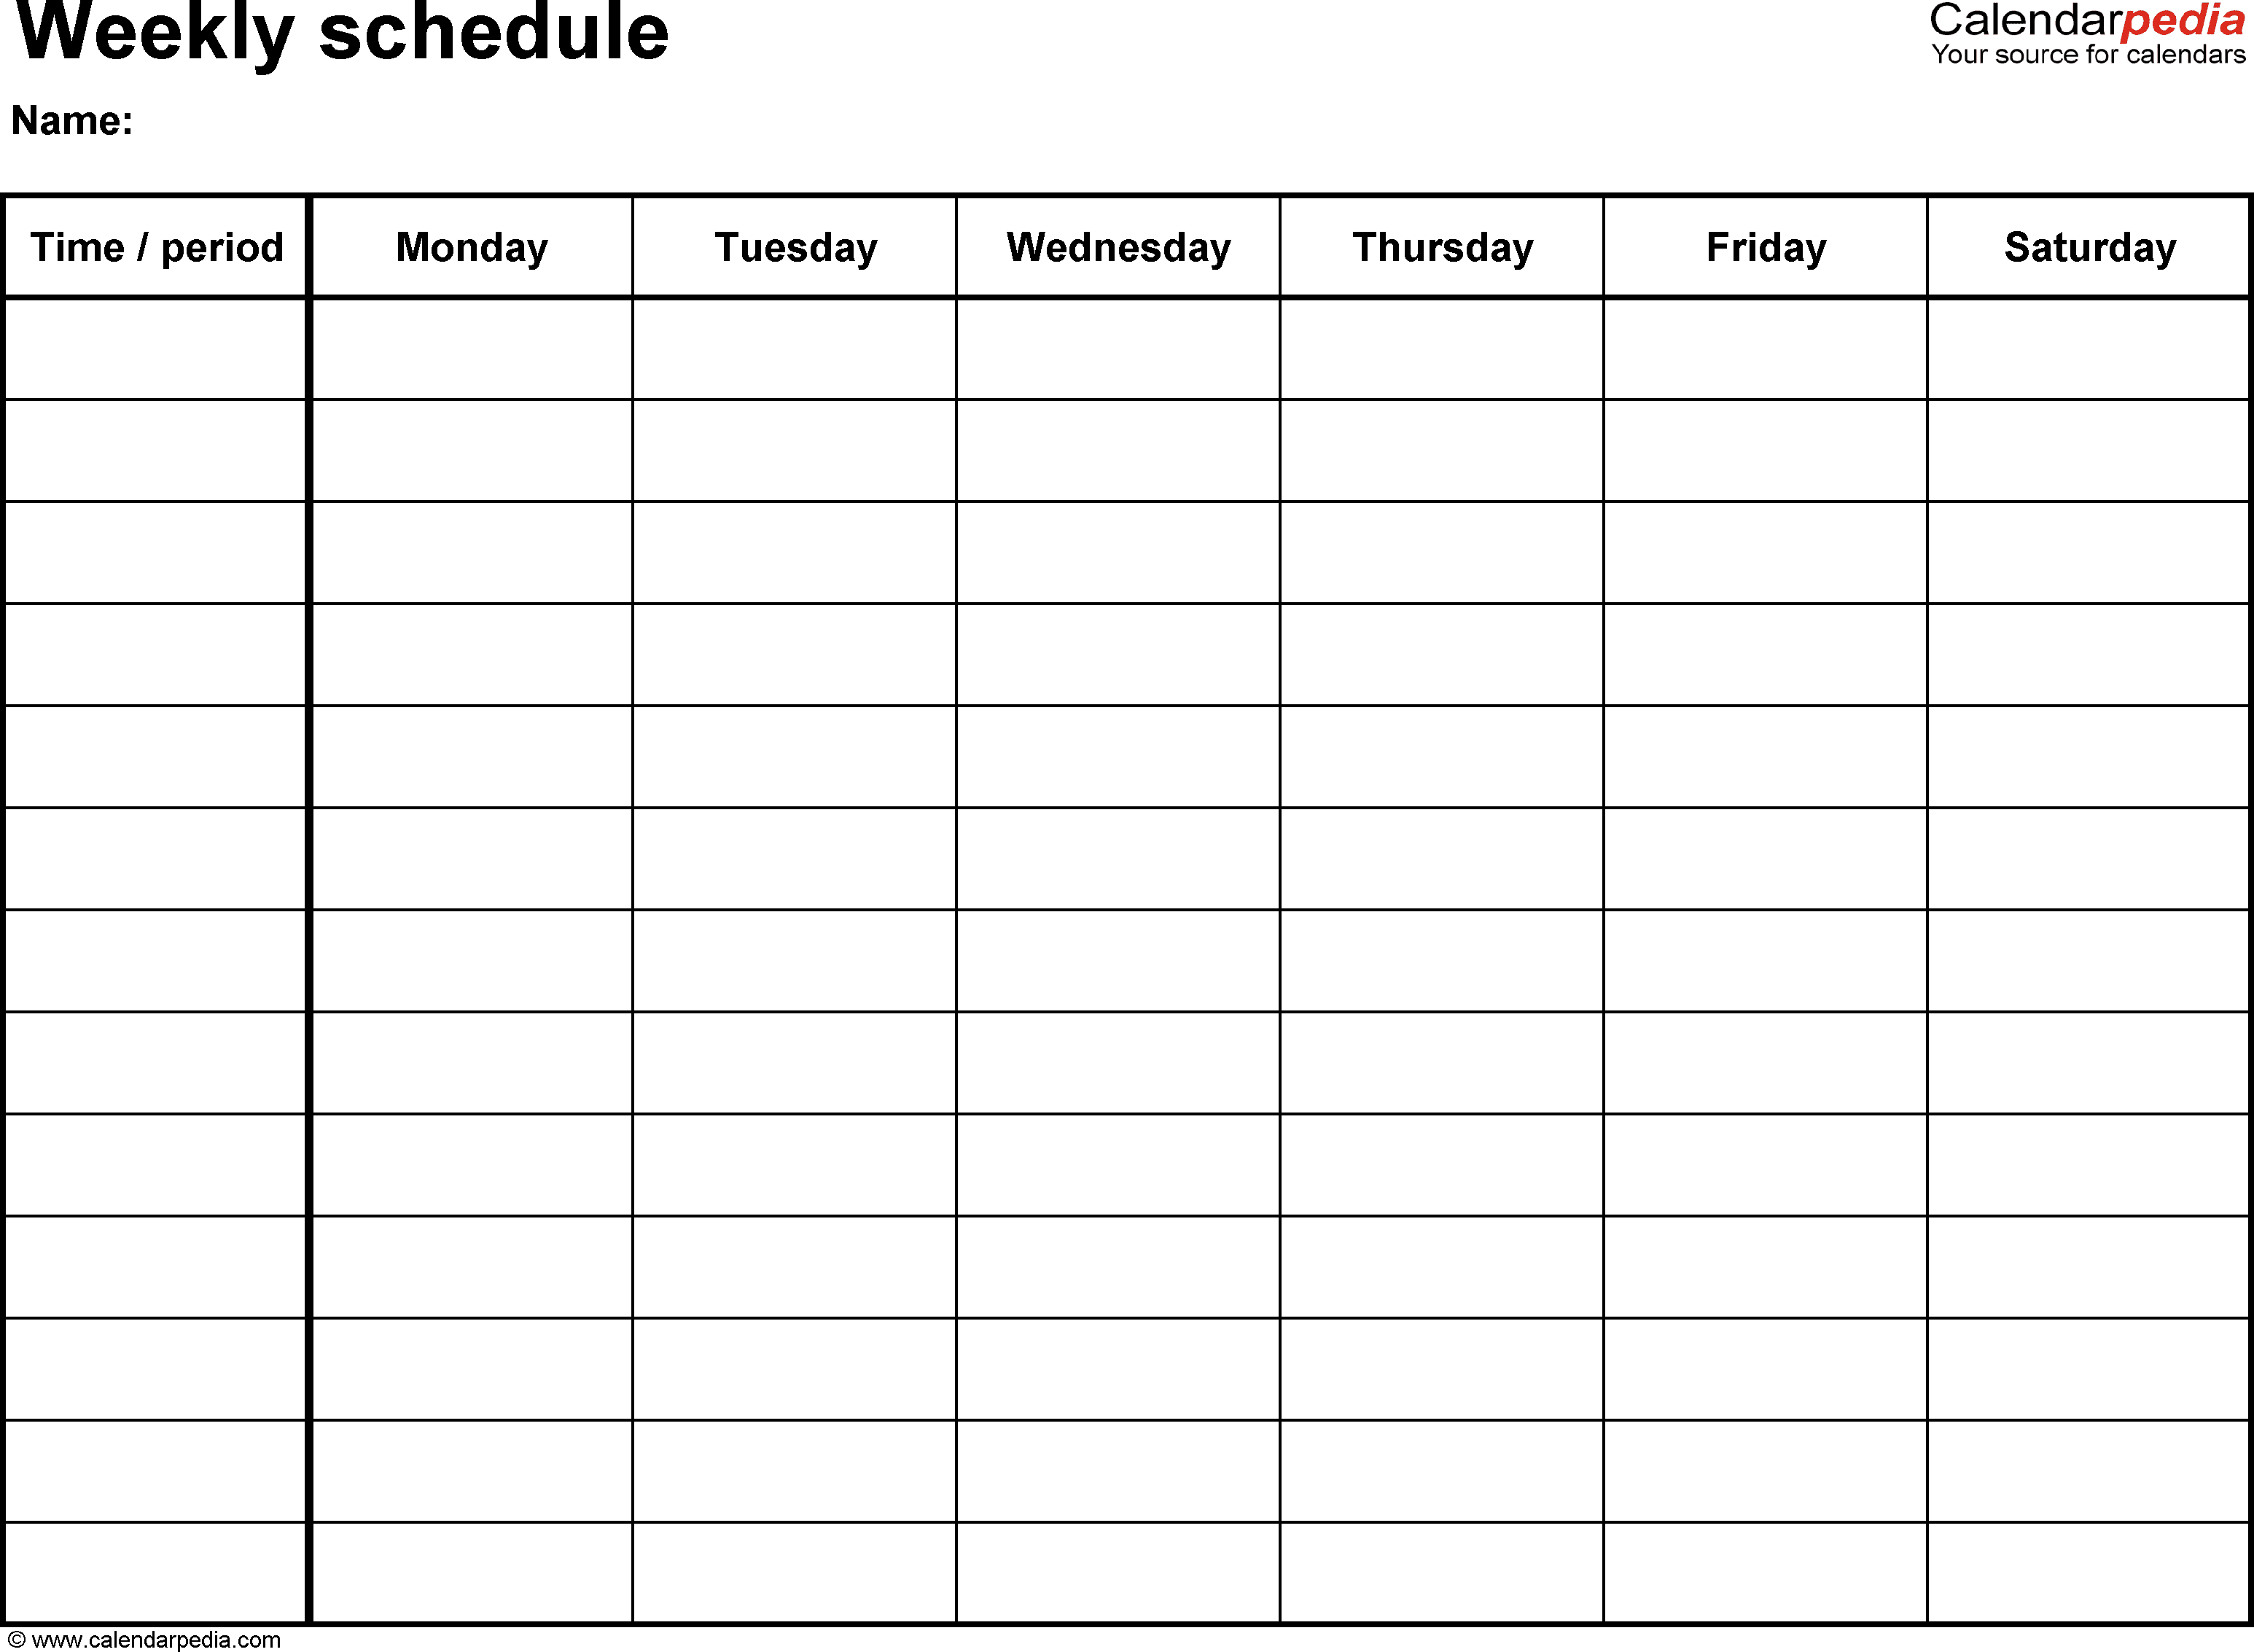 Weekly schedule template for Word version 8: landscape, 1 page, Monday ...